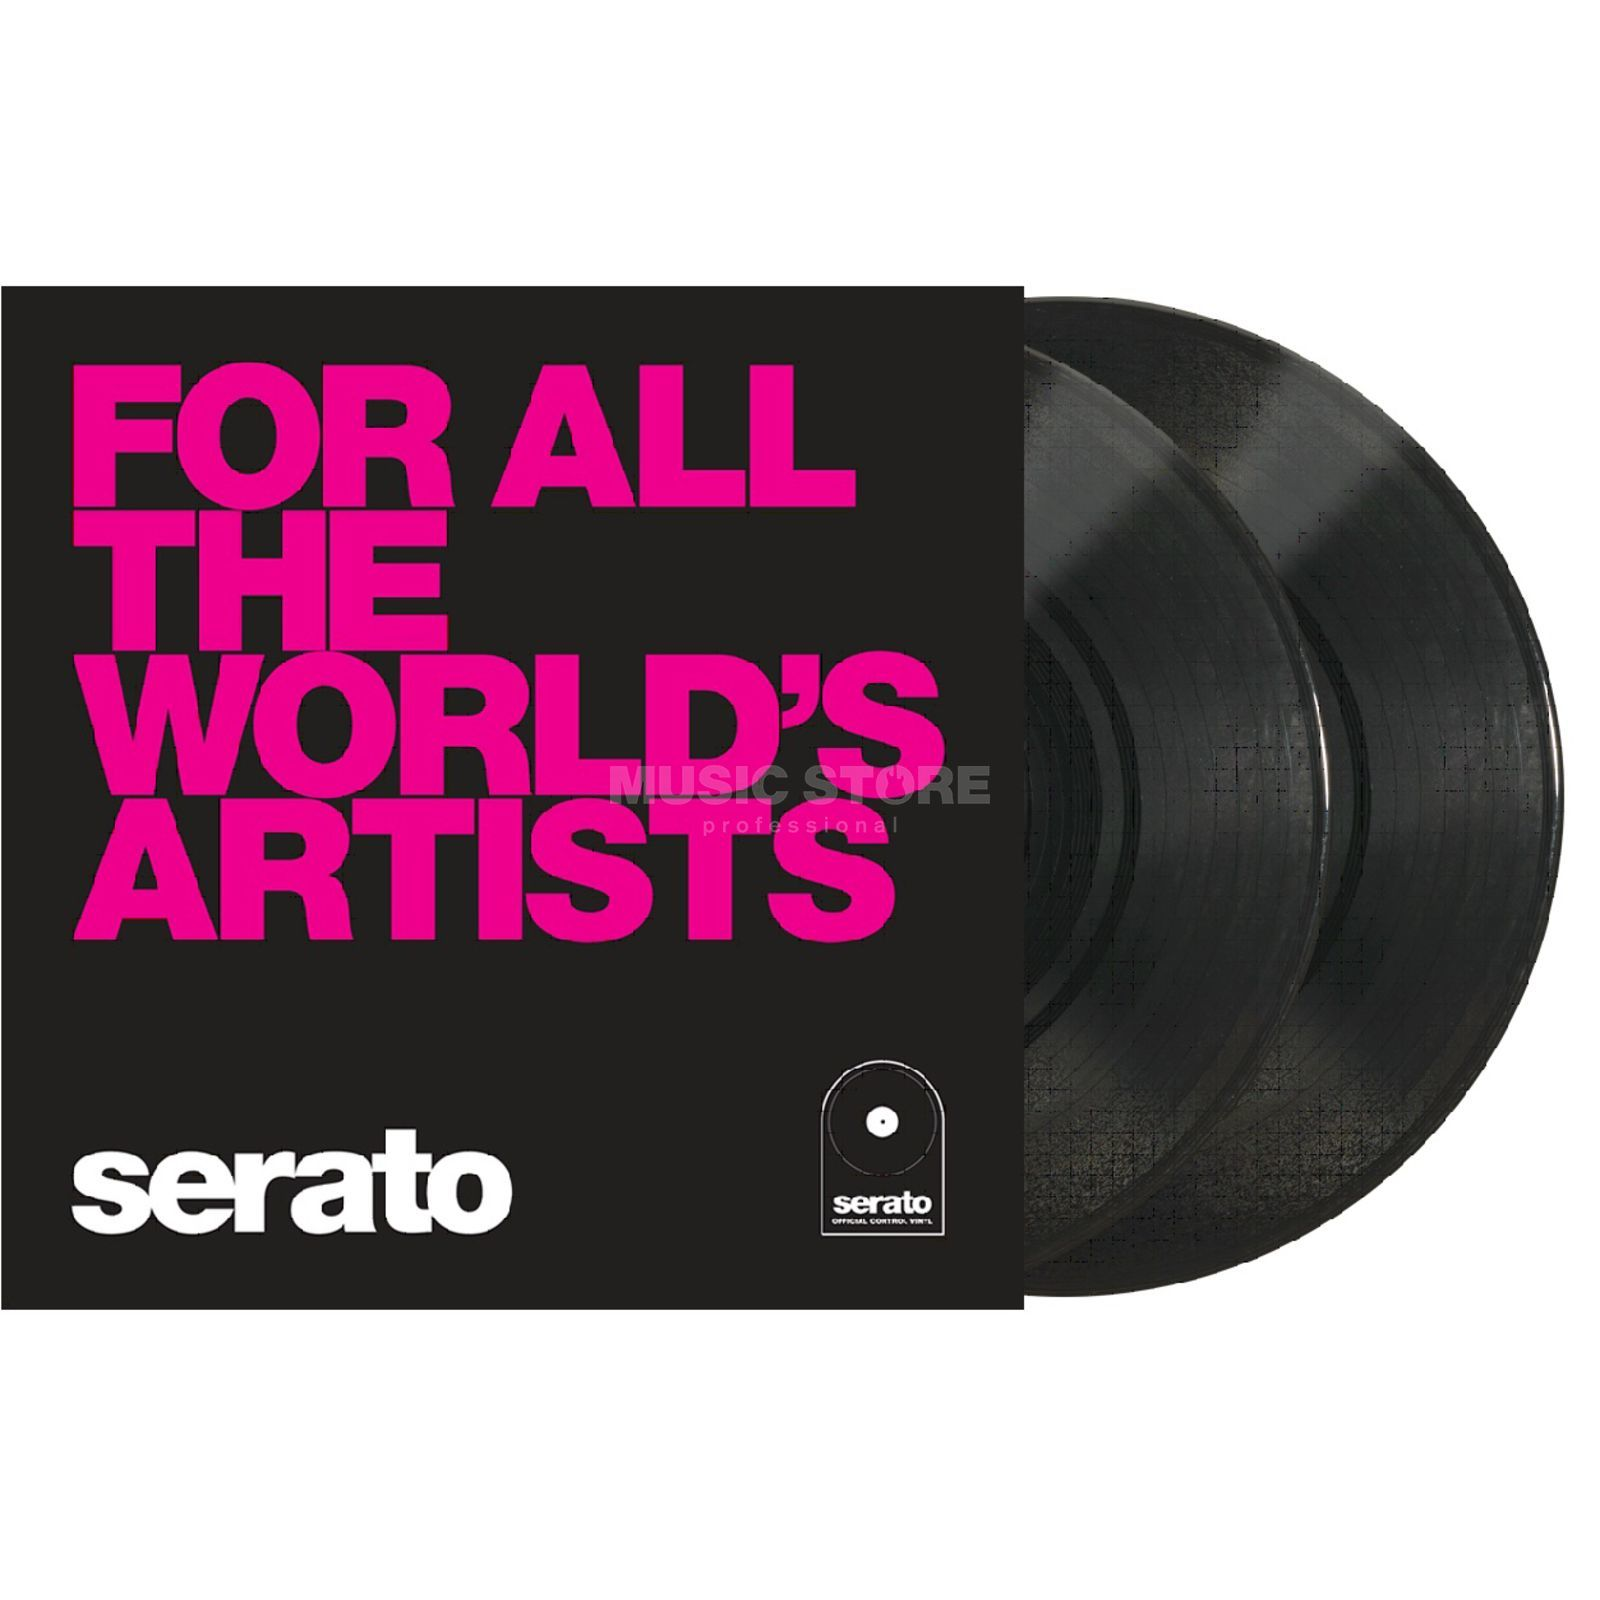 "Serato Manifesto 10"" Control Vinyls schwarz, For all the worlds Produktbild"